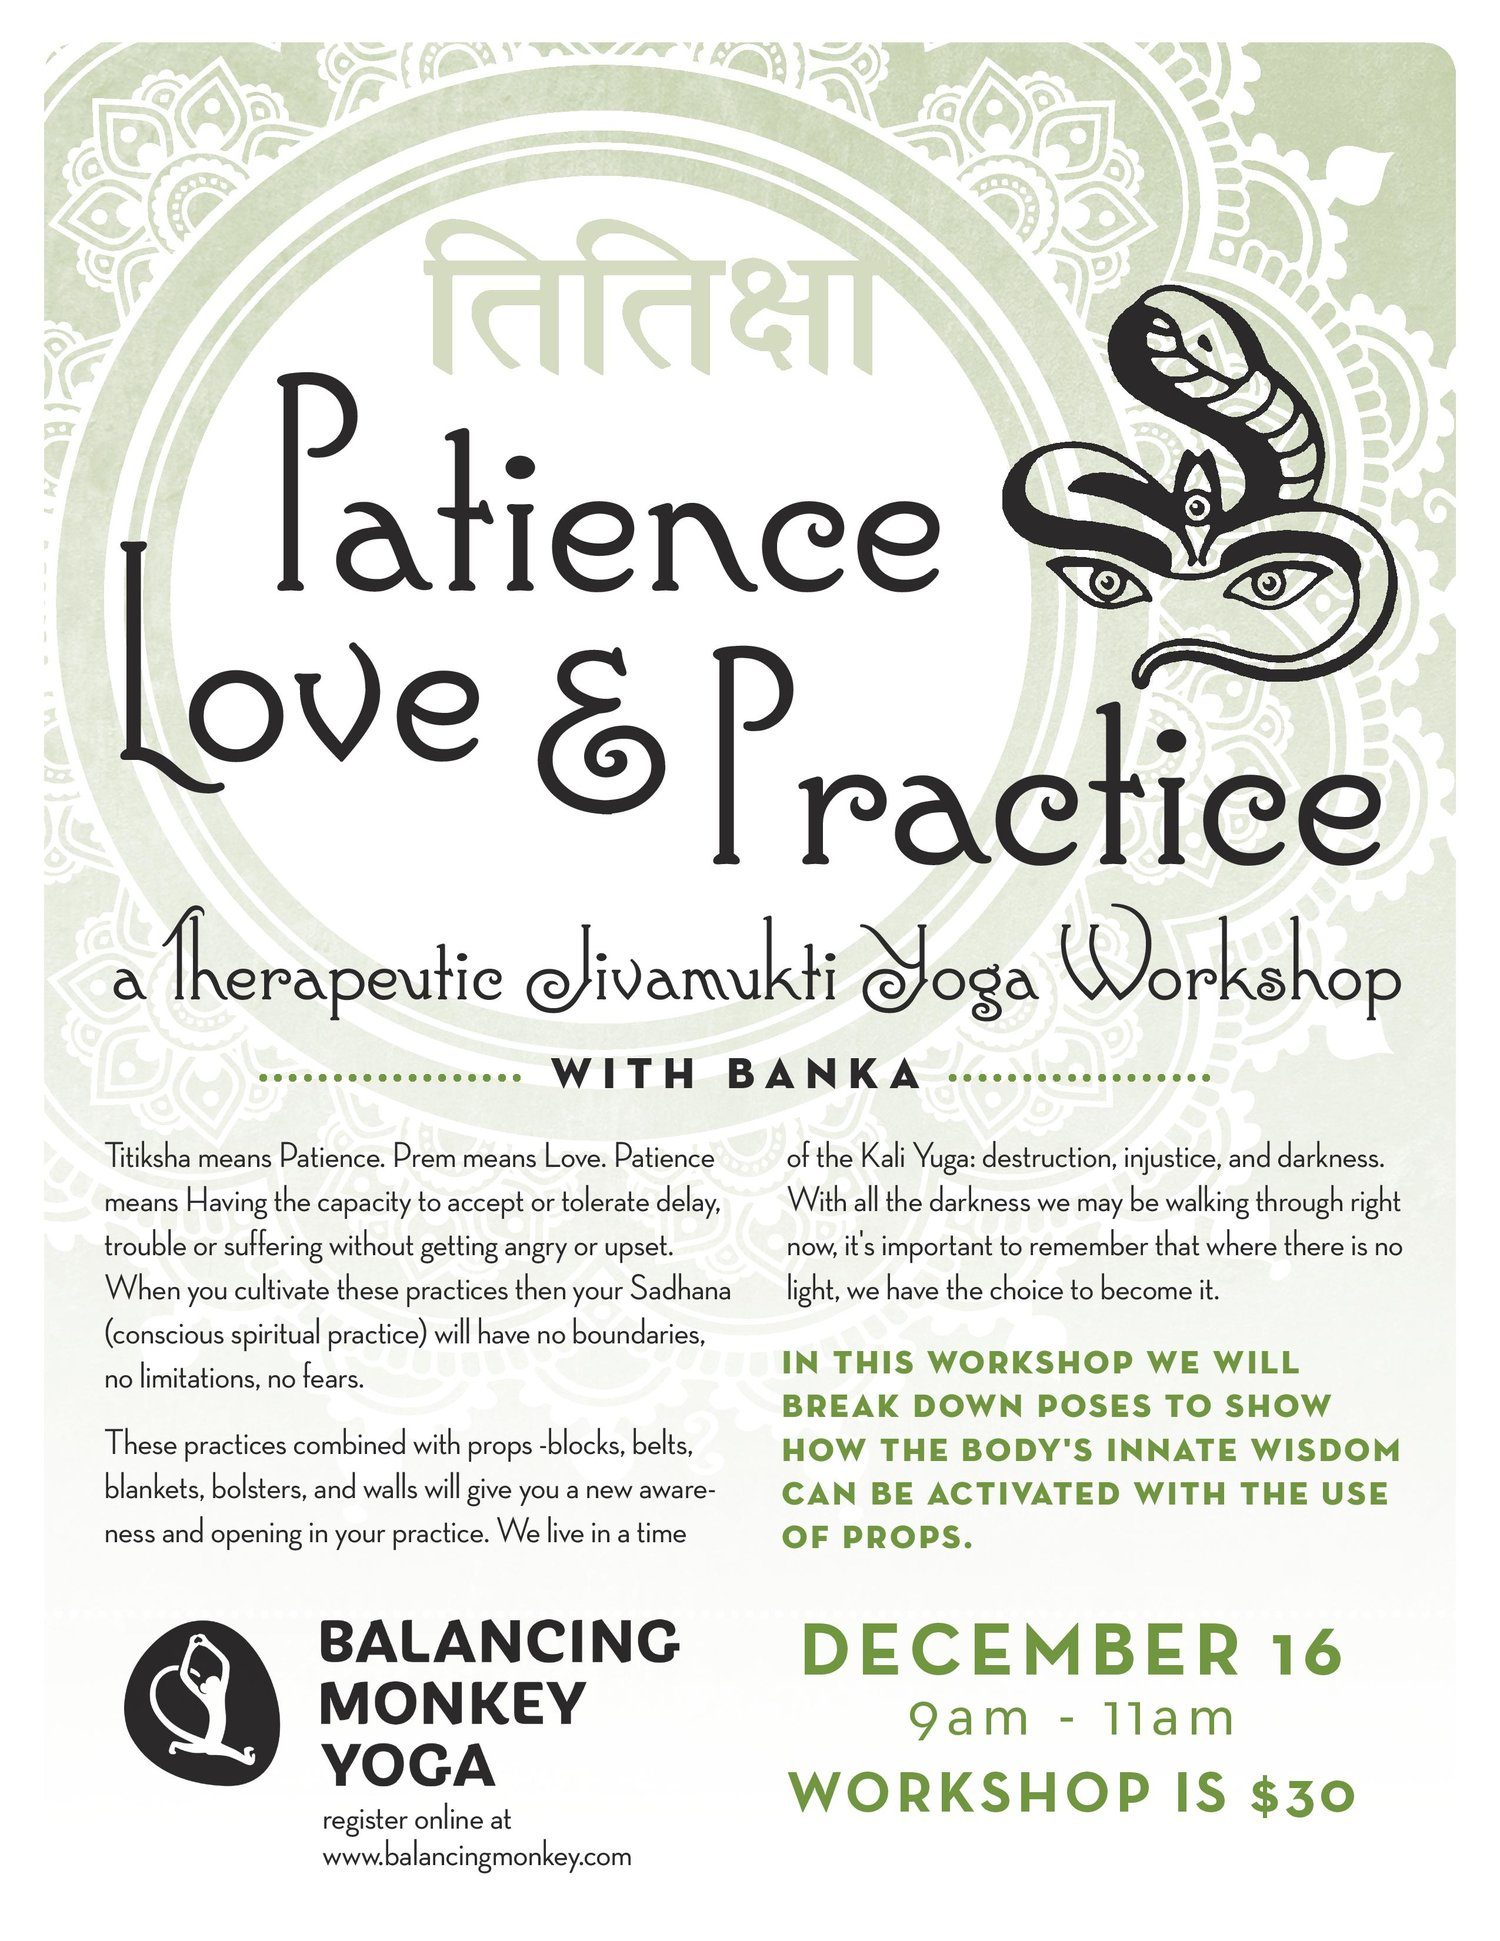 patience, love, and practice: a therapeutic jivamukti yoga workshop